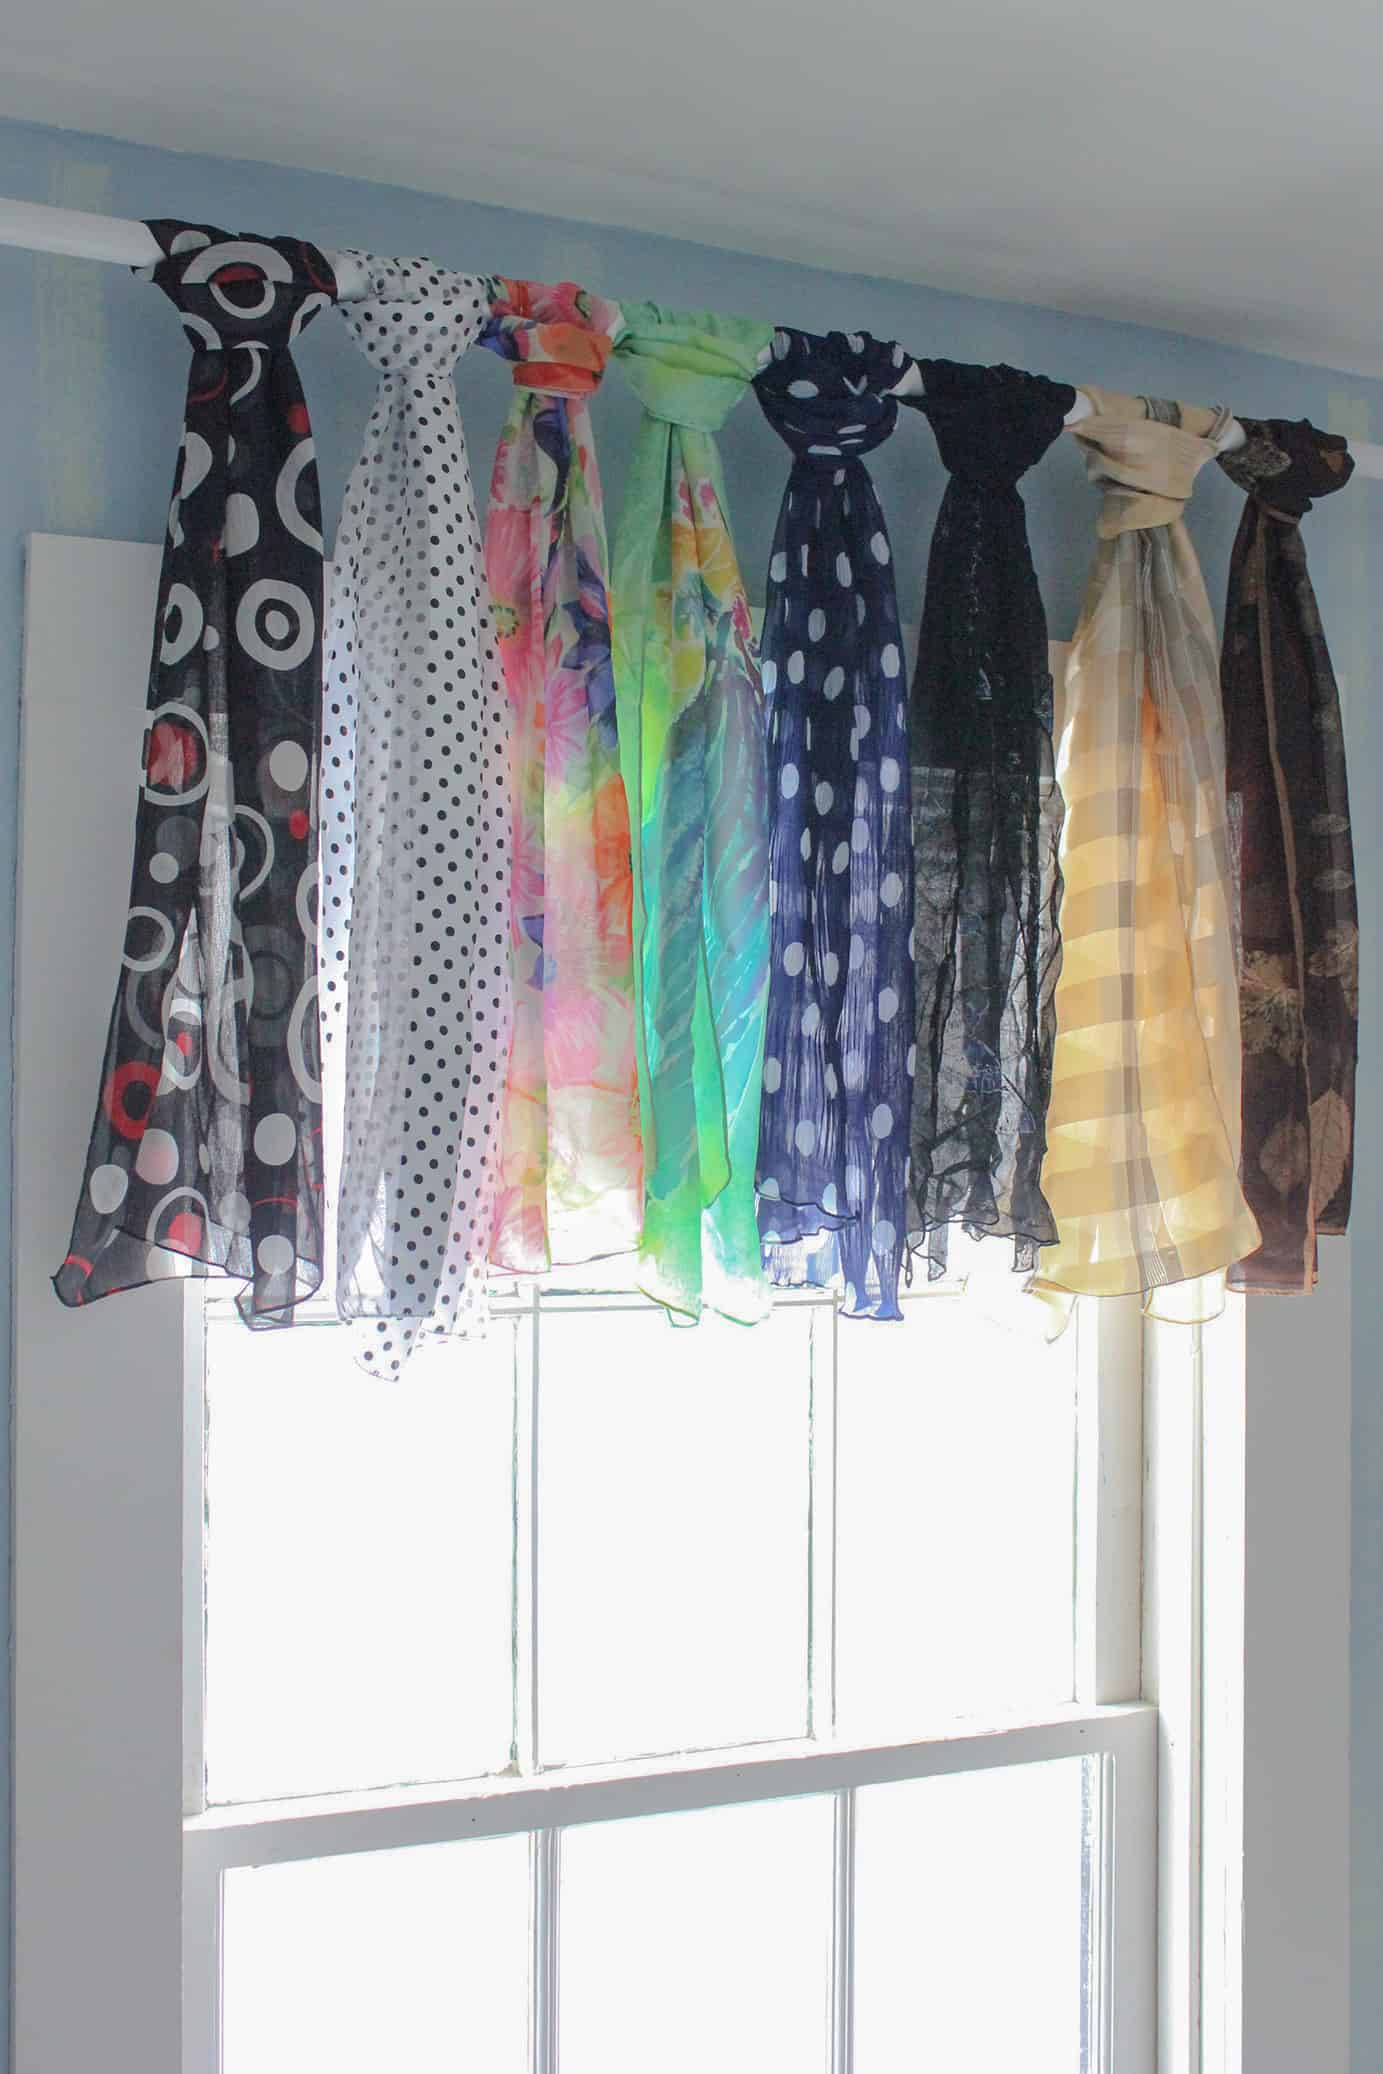 Creative no-sew window valance from knotted scarves